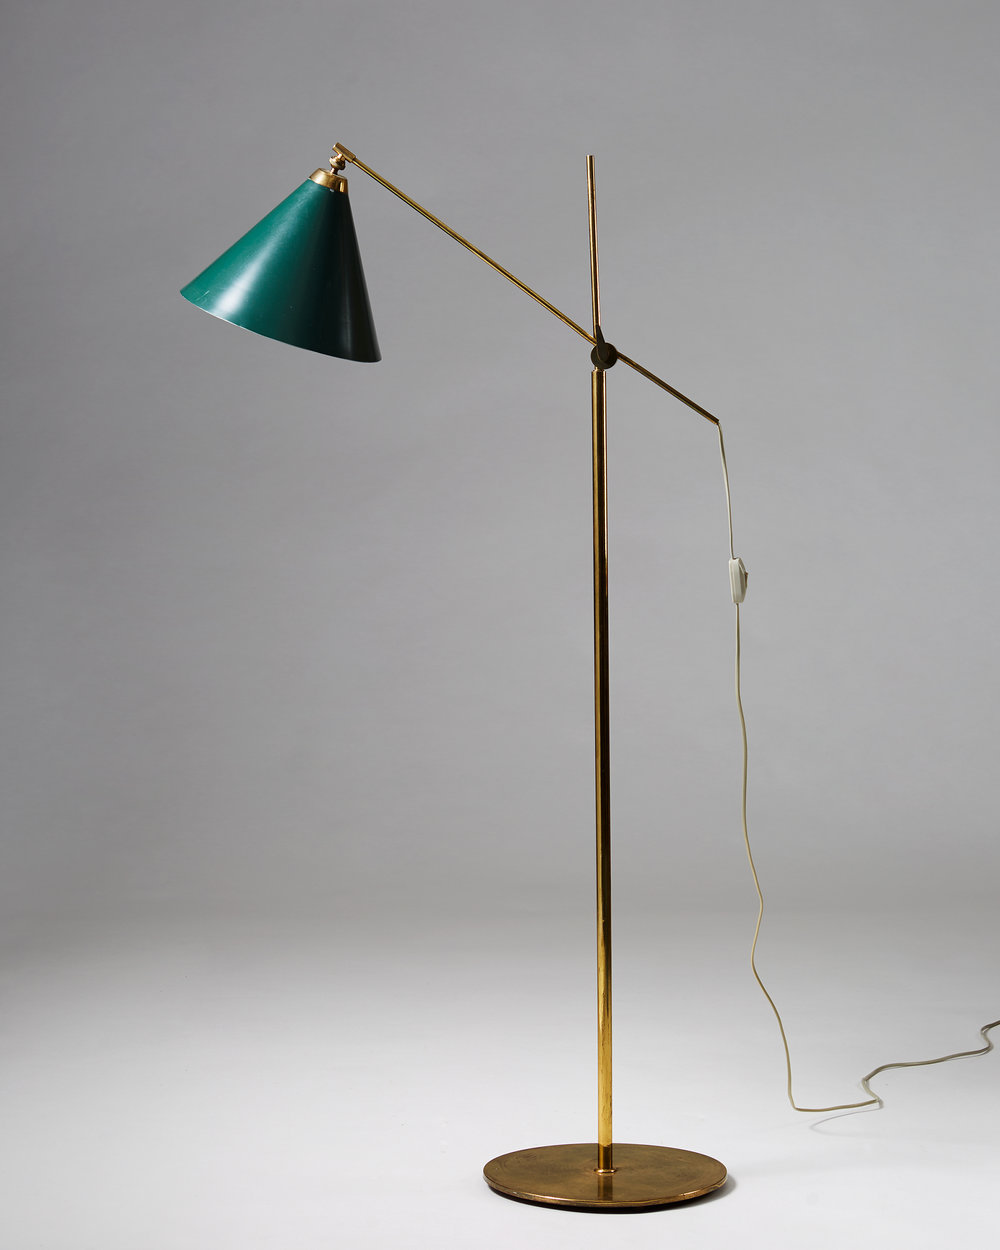 Poul Dinesen  Floor lamp Denmark, 1960's Brass and lacquered metal. Height: 130 cm Shade: 28 cm